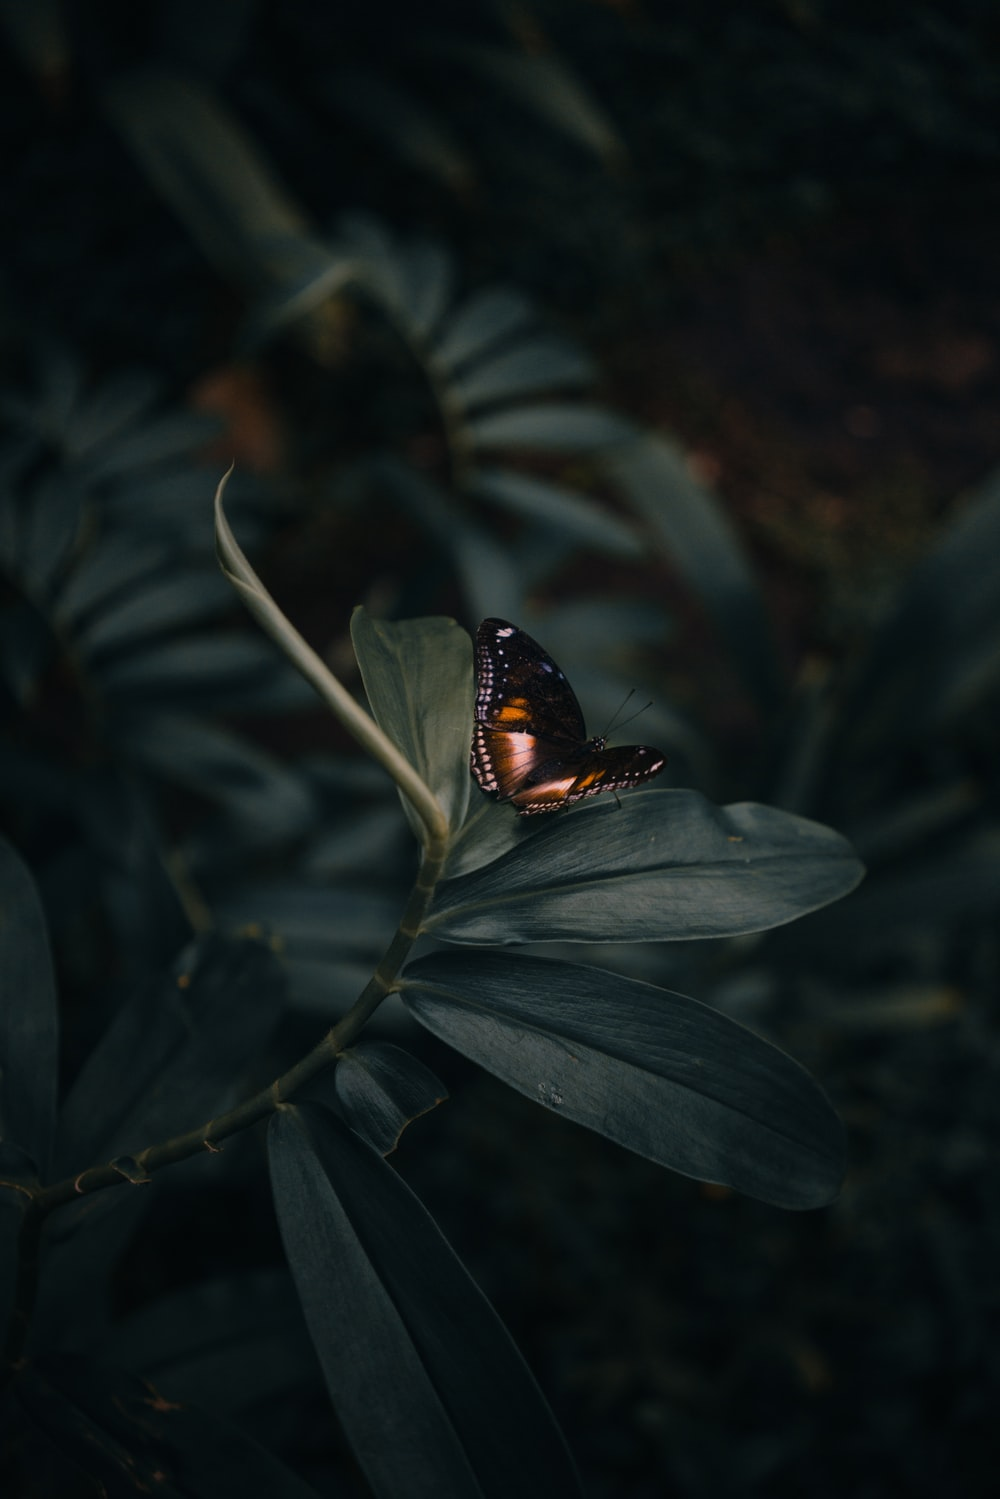 butterfly perching on leaves